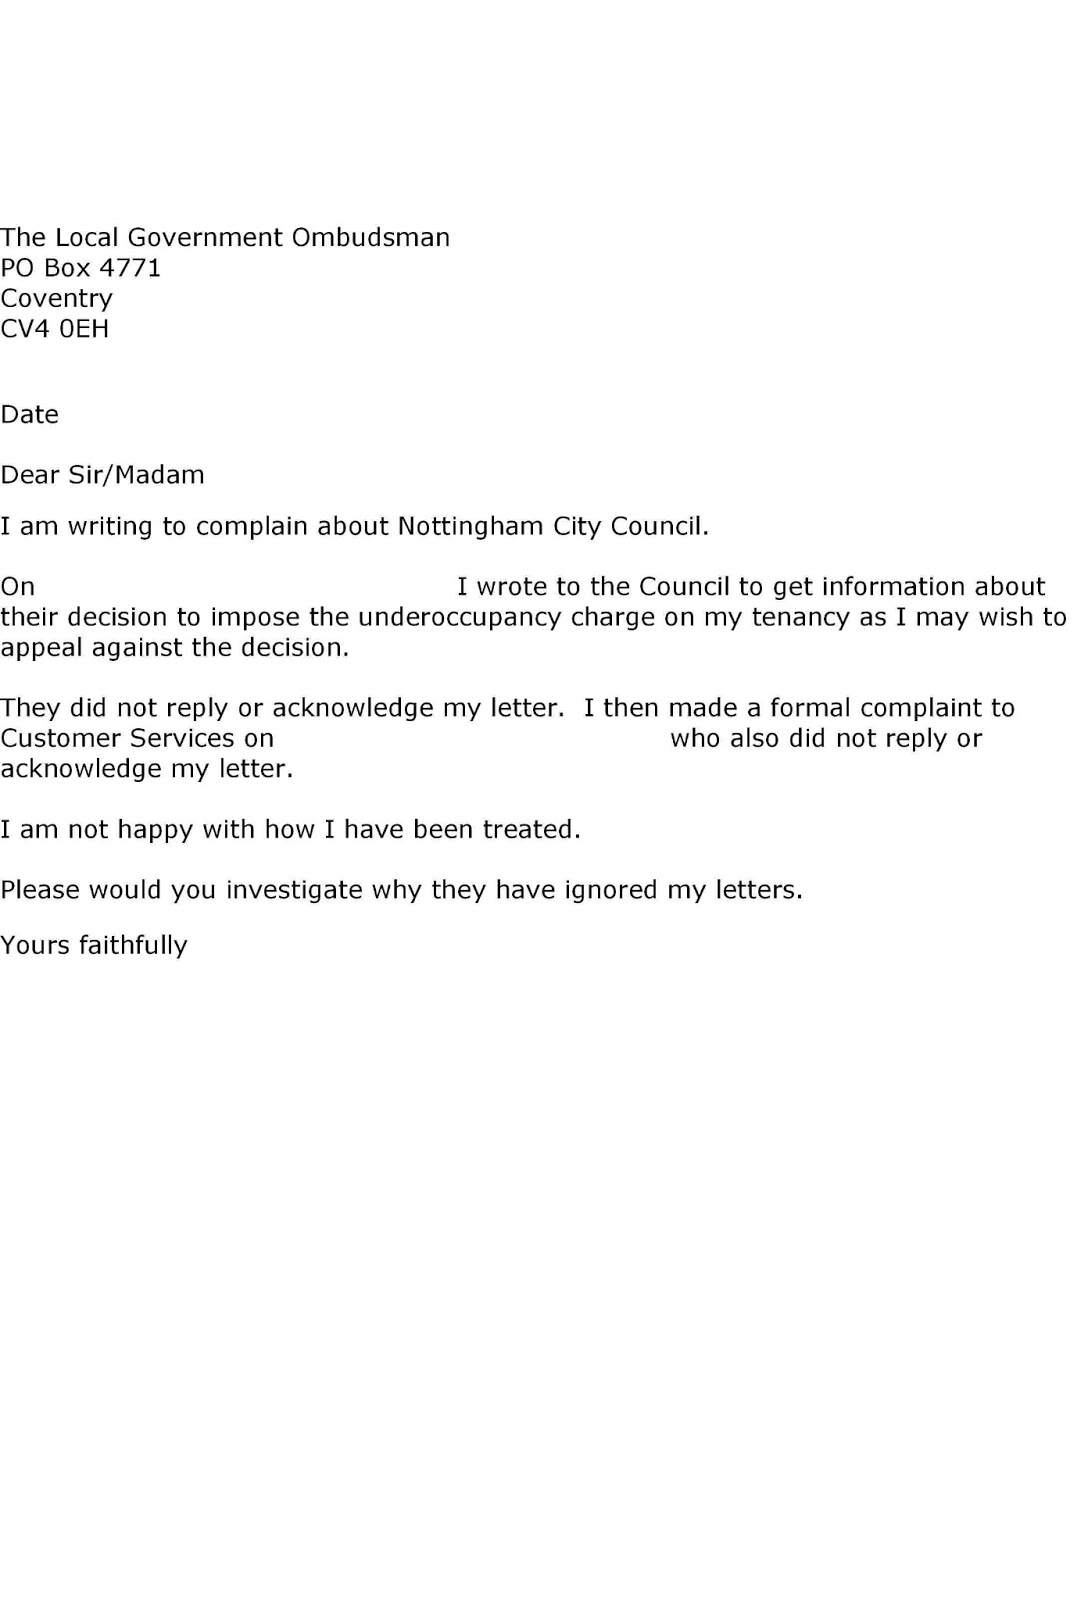 Letter To Council Challenging Reduction Of Housing Benefits